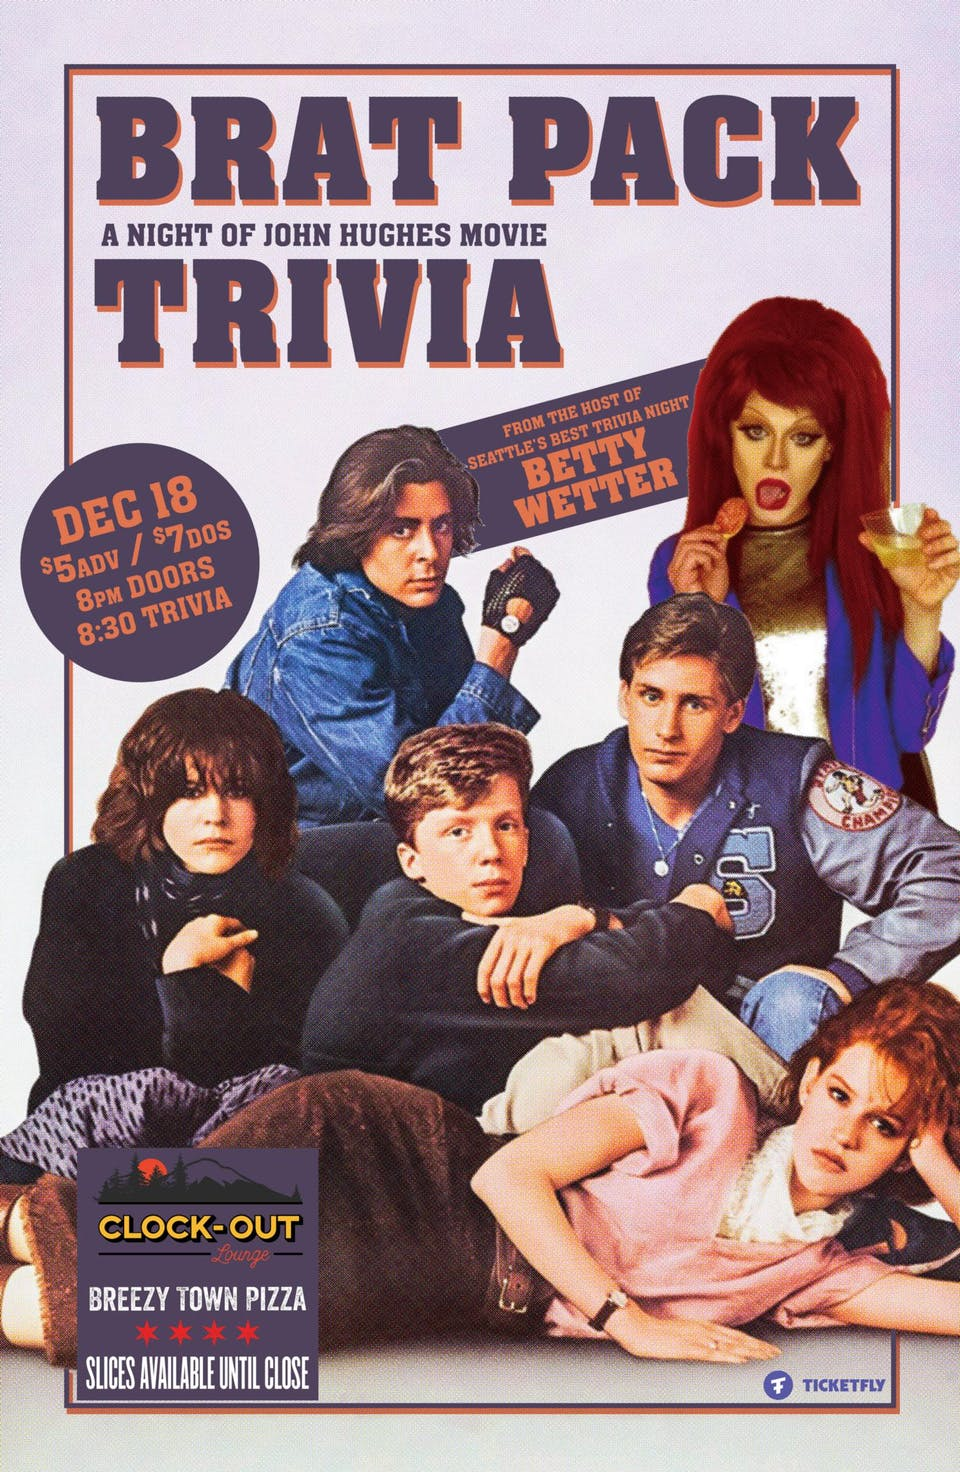 """Brat Pack"" A Night of John Hughes Movie Trivia Hosted By Betty Wetter"